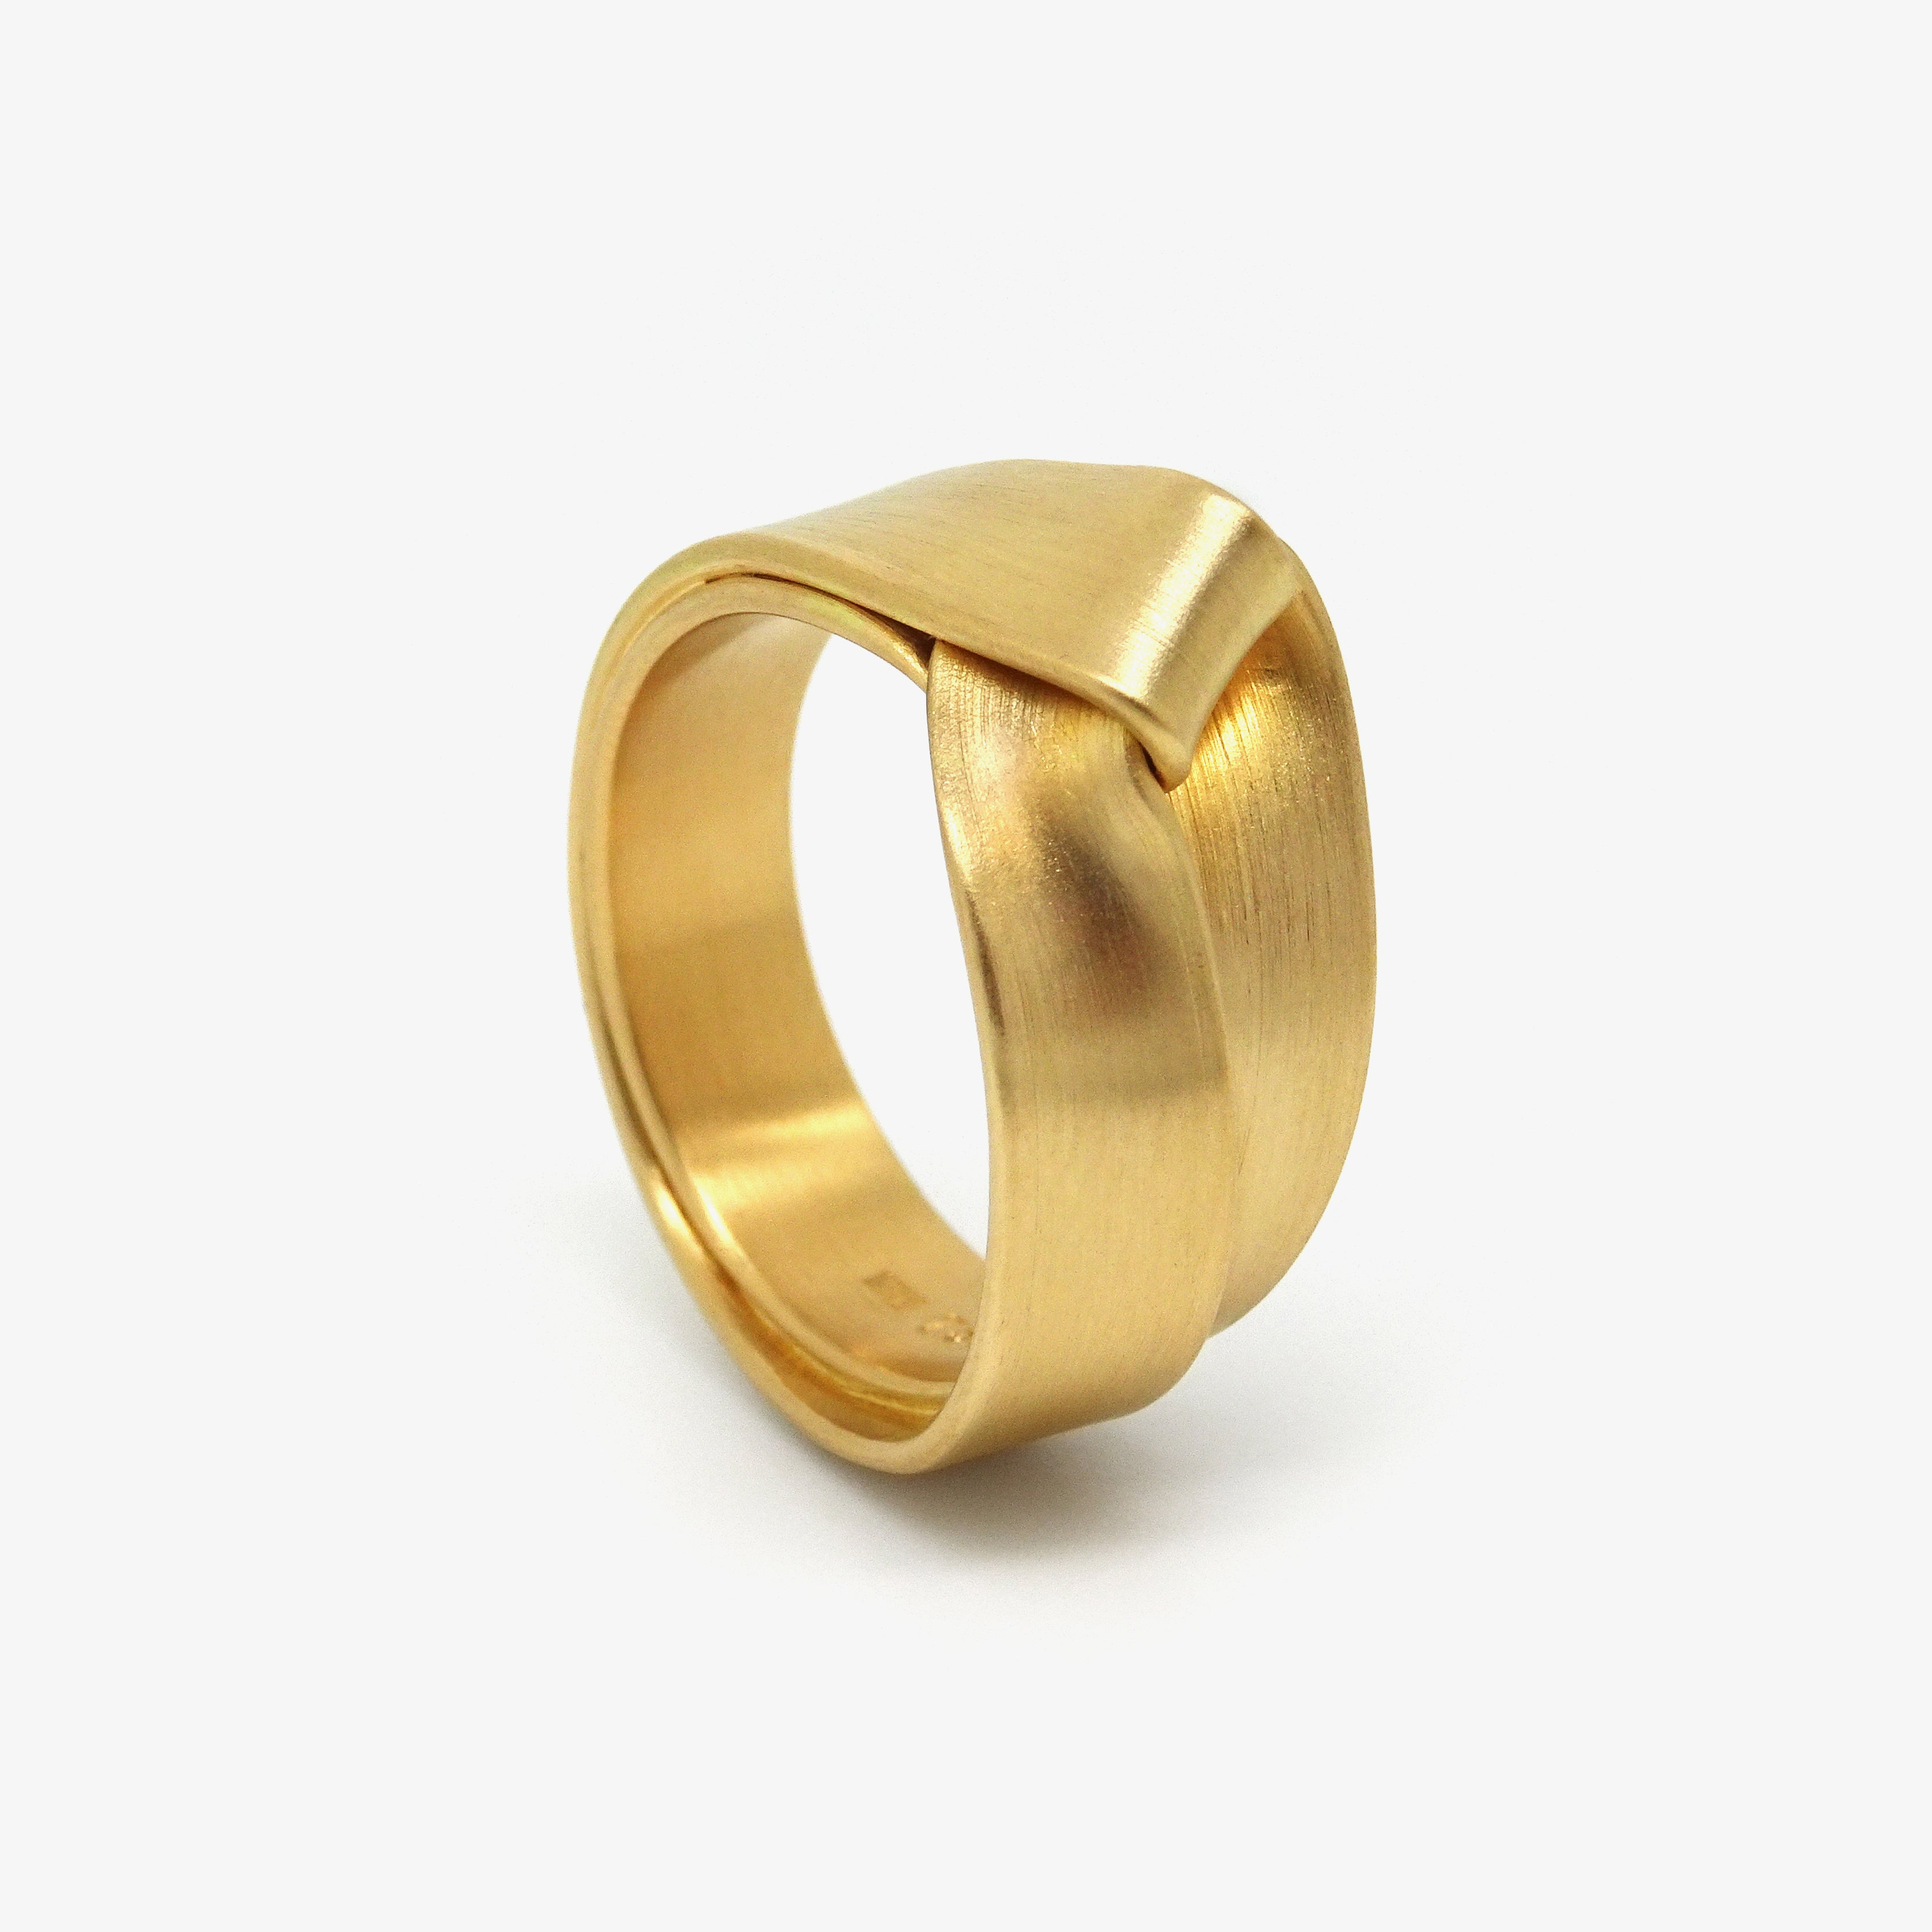 GOLD FOLD RING